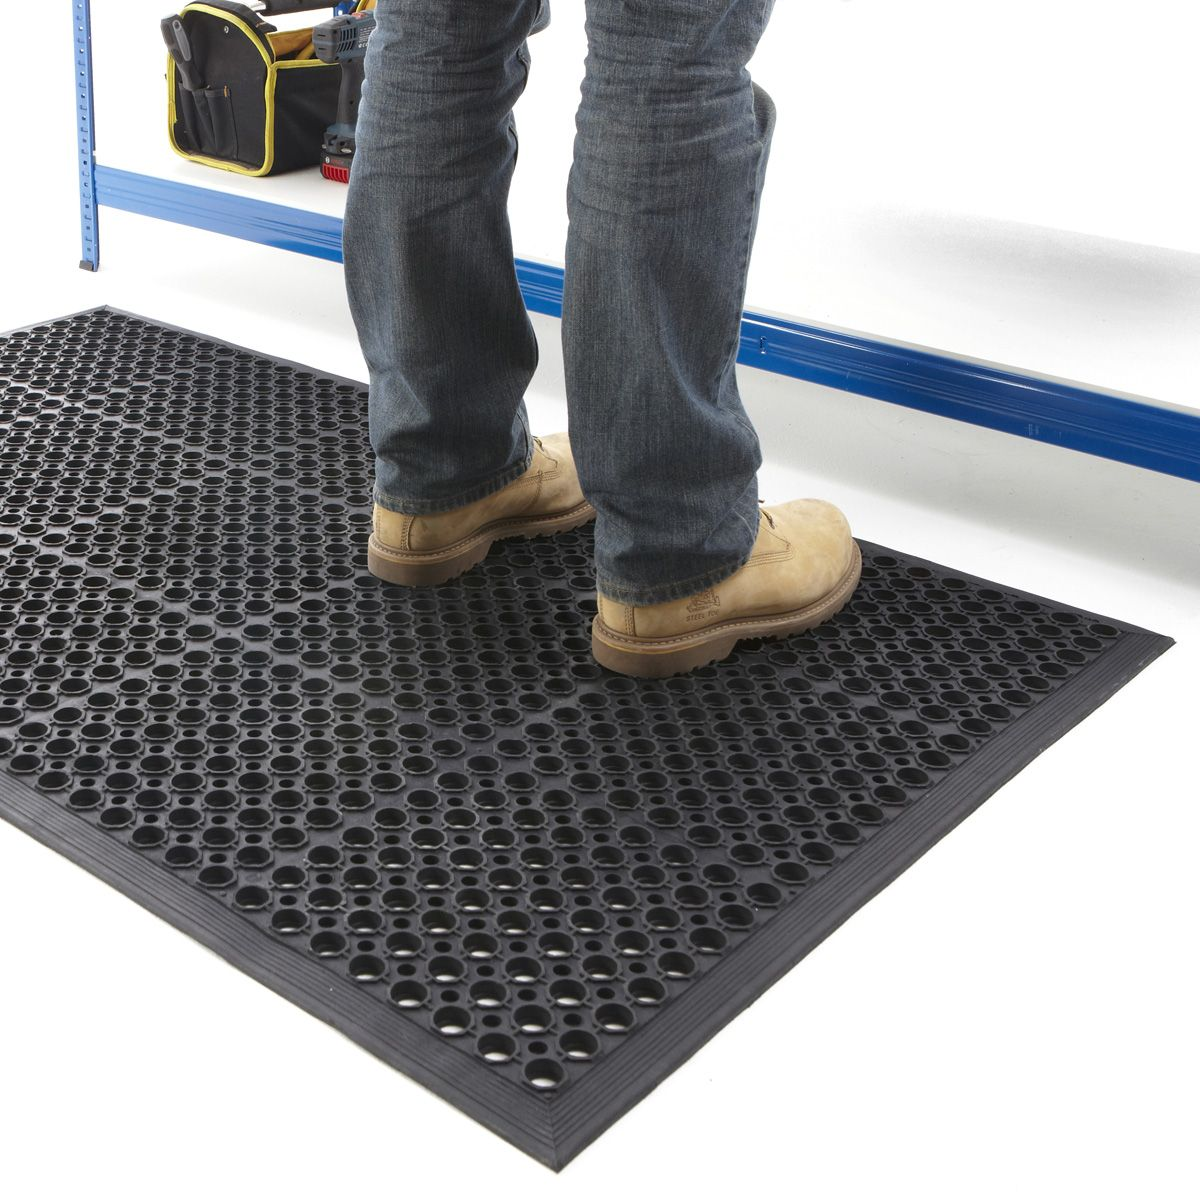 Why Rubber Mats Work So Well